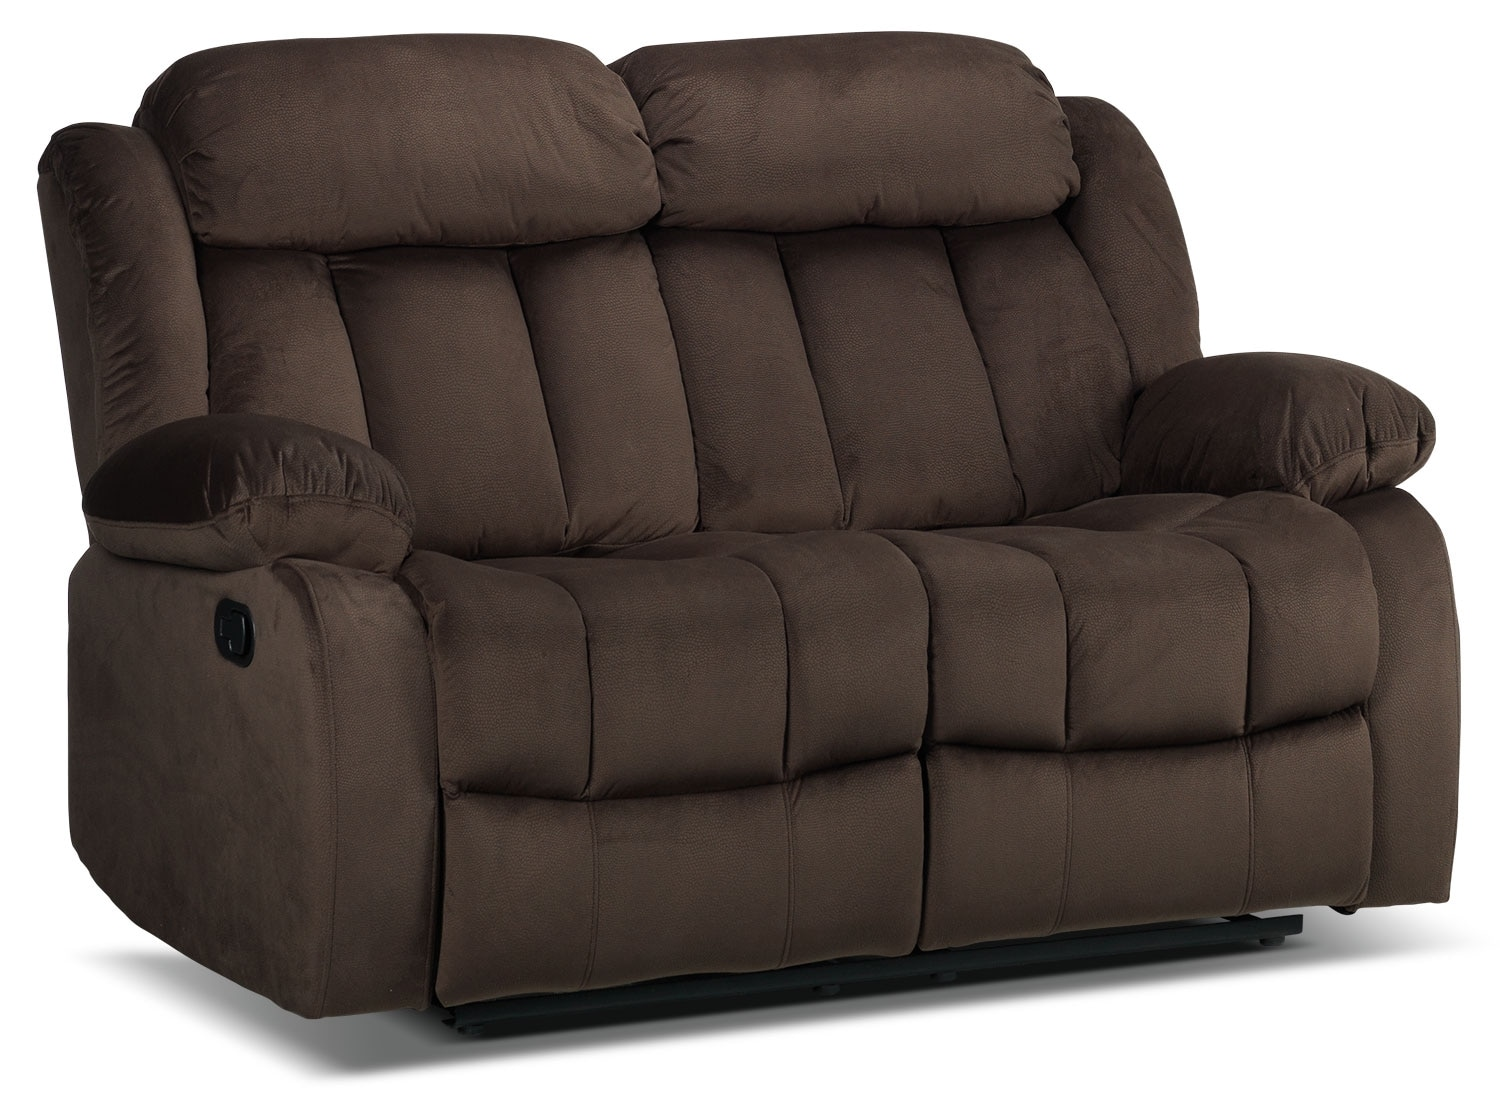 Living Room Furniture - Alabama Reclining Loveseat - Deep Brown